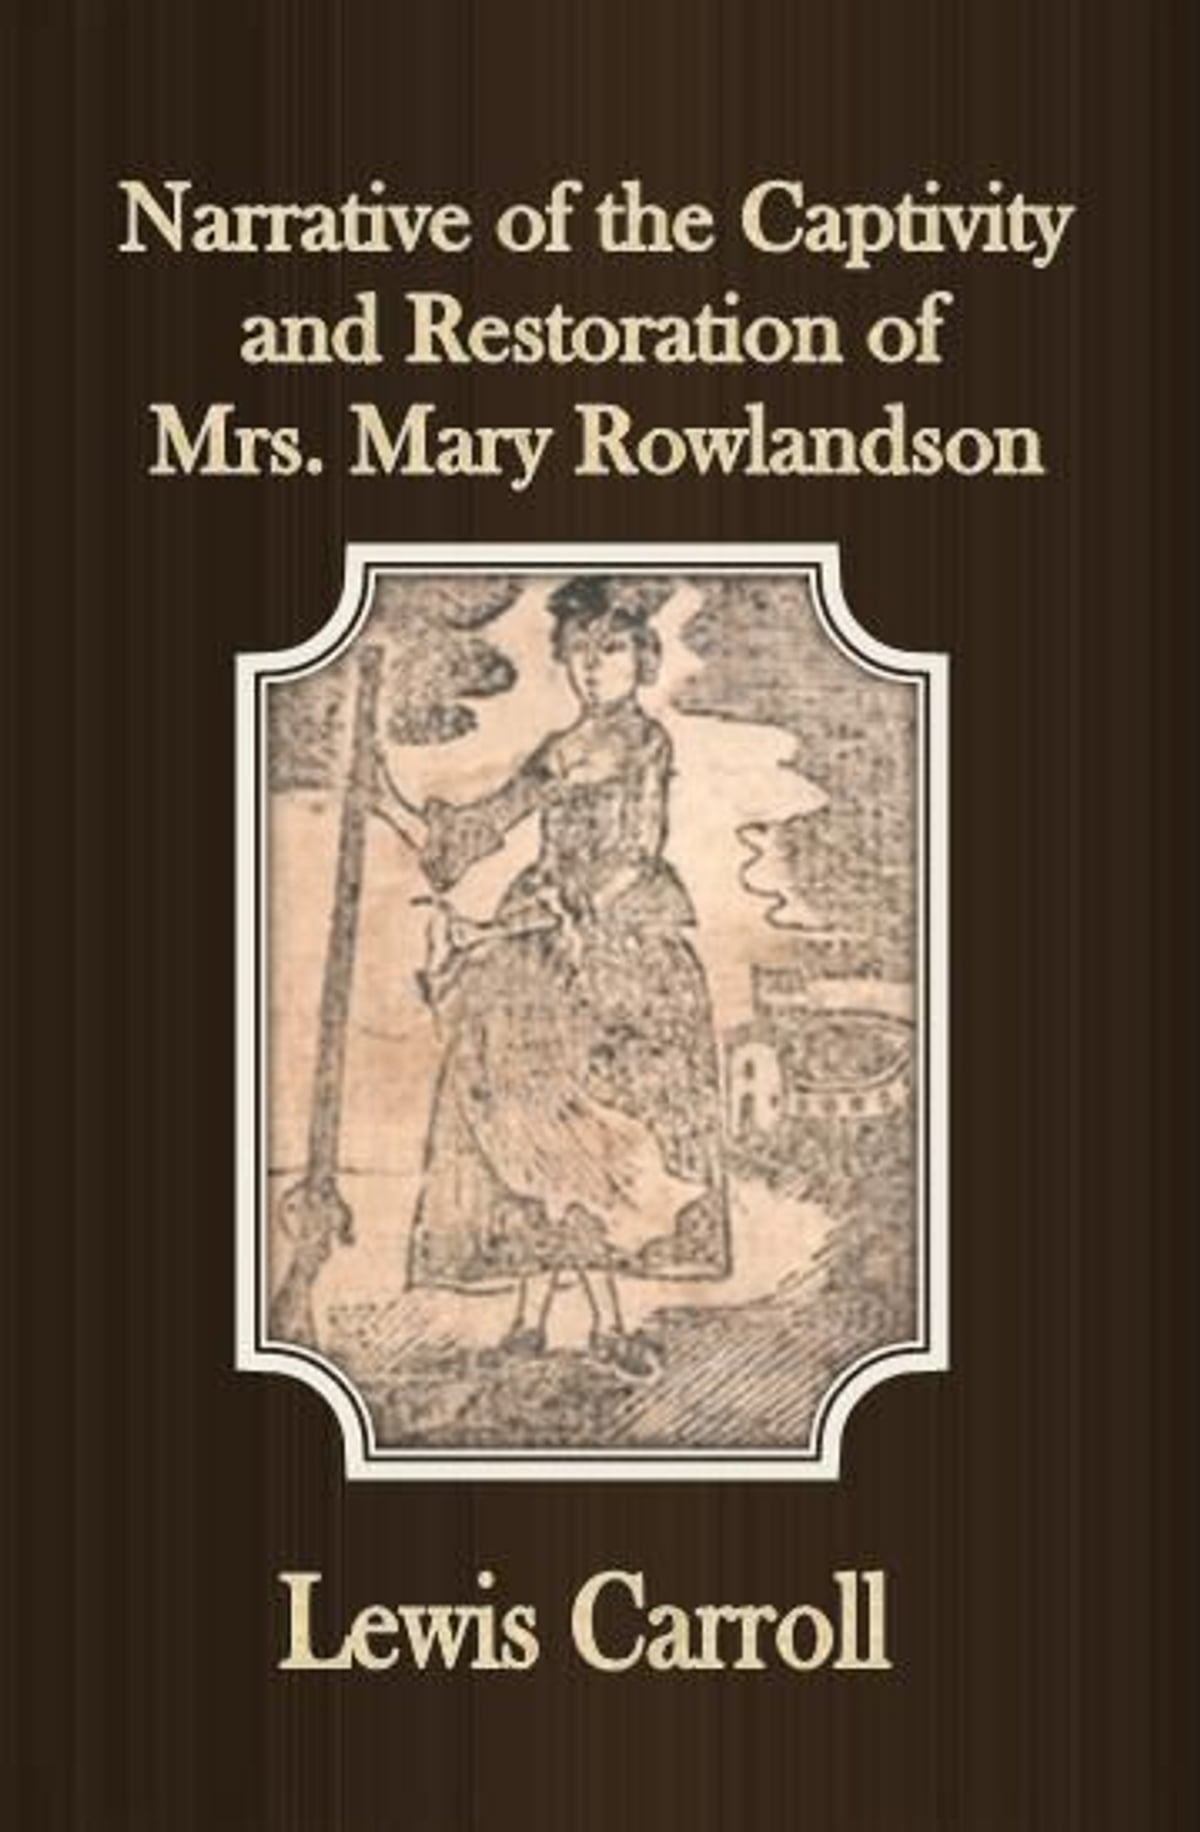 narrative of the captivity and restoration of mrs mary rowlandson  narrative of the captivity and restoration of mrs mary rowlandson ebook by mrs mary rowlandson 1230000185992 rakuten kobo